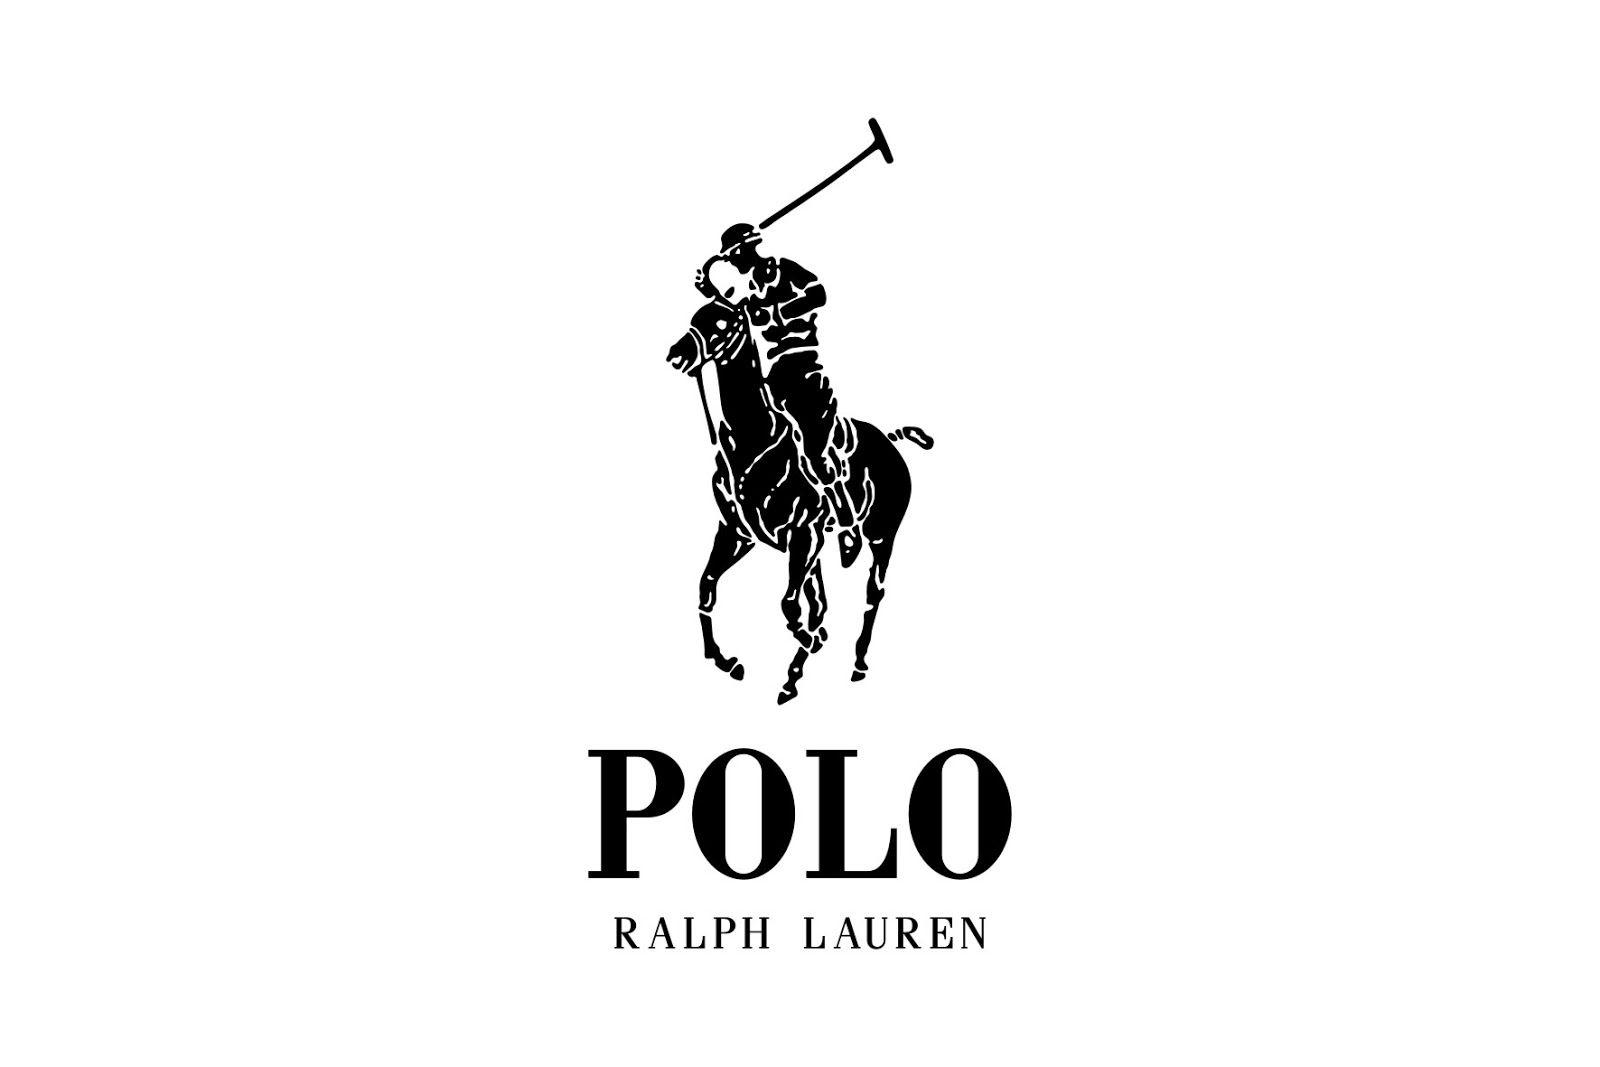 Ralph Lauren polo logo -Logo Brands For Free HD 3D